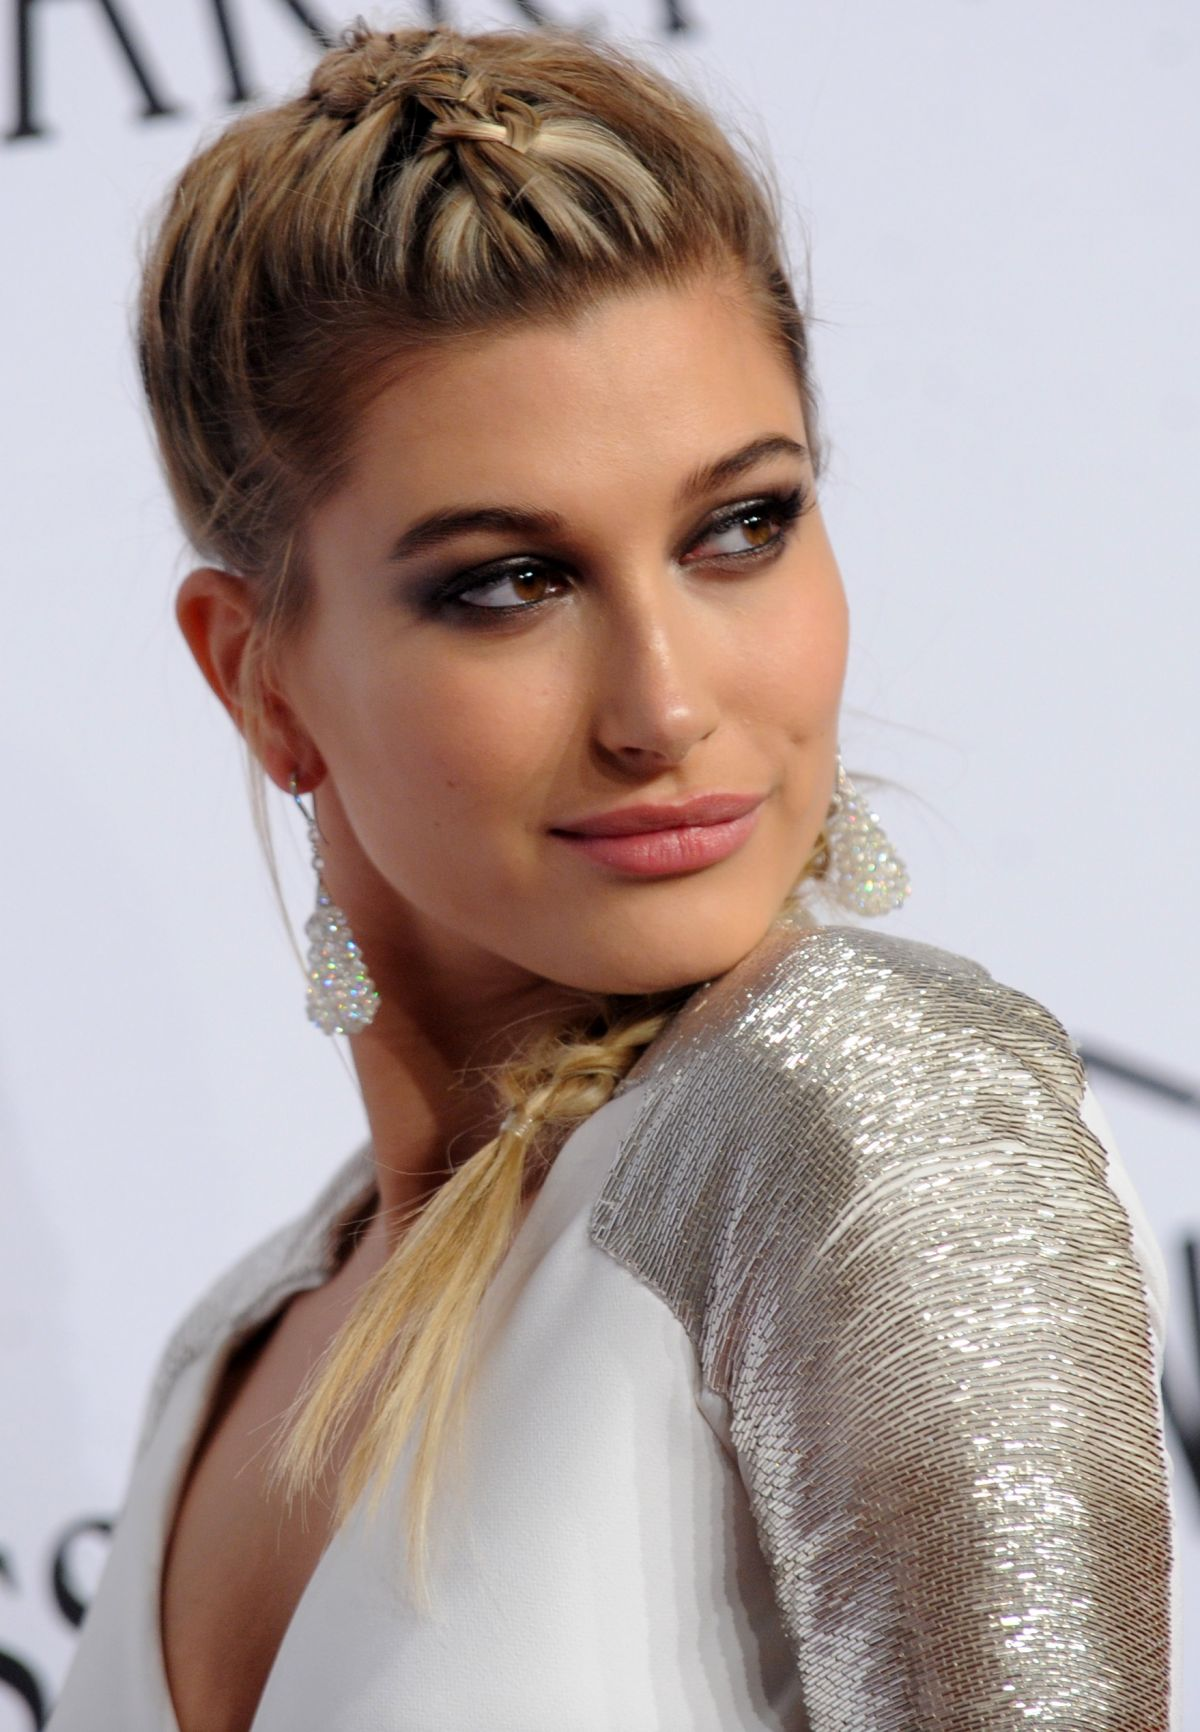 hailey baldwin - photo #1